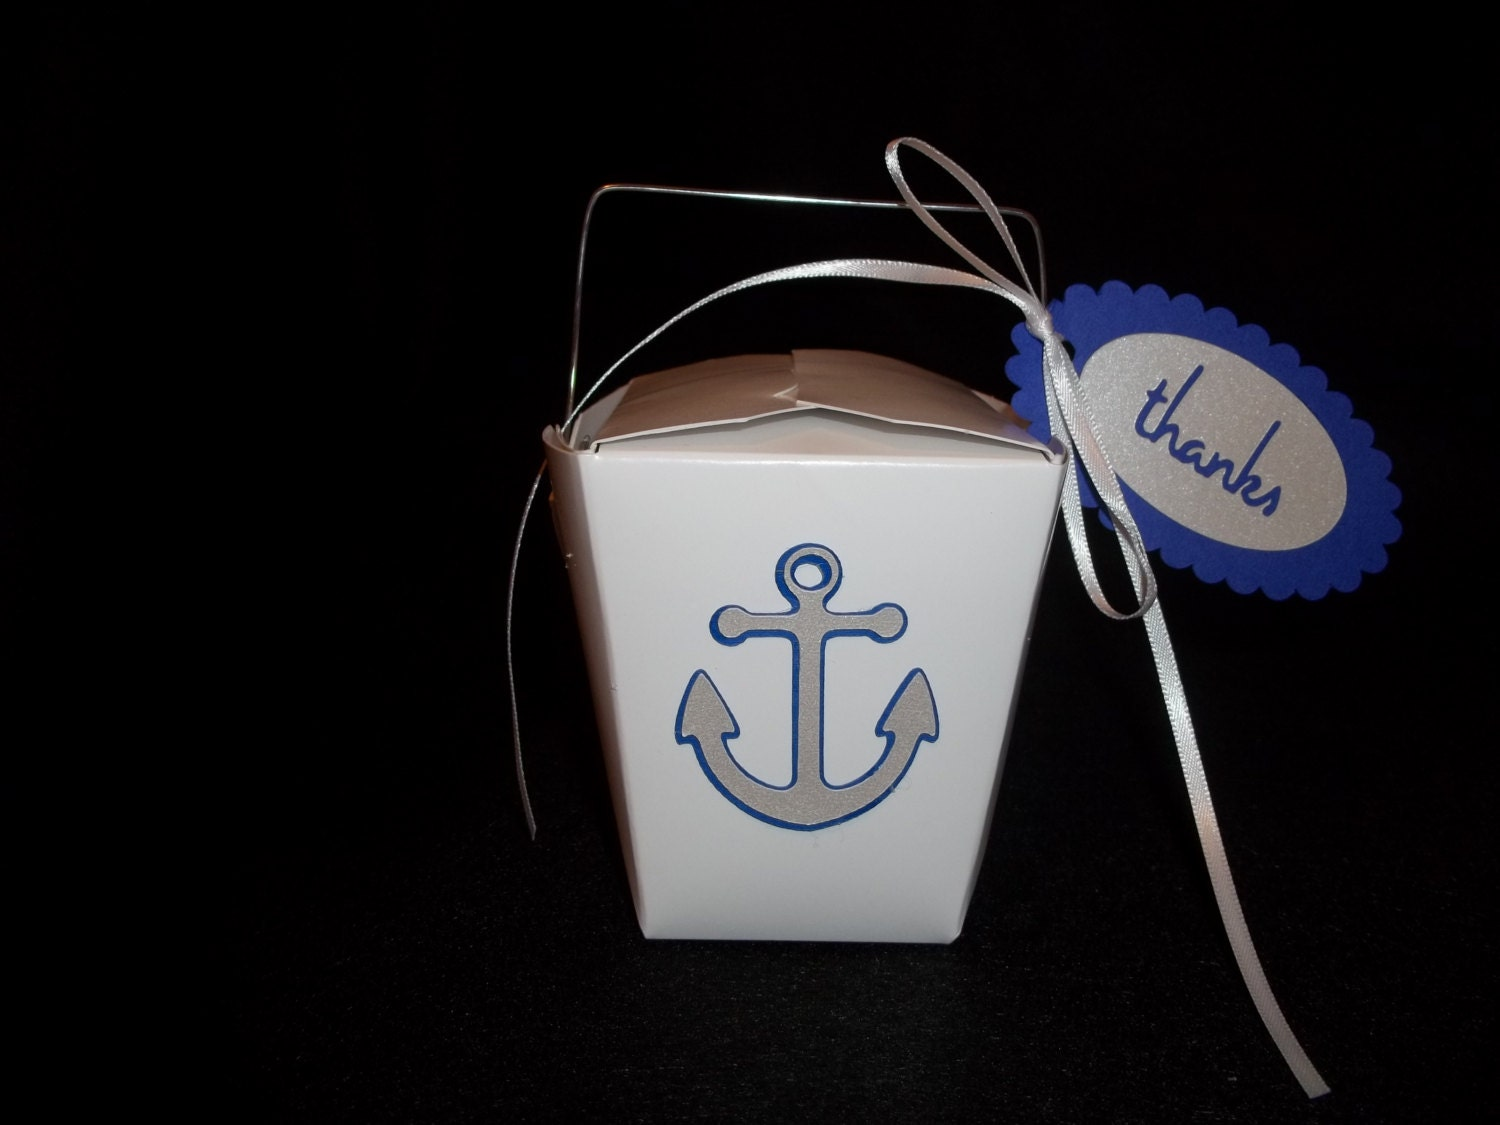 Chinese take out favor boxes wedding : Anchor chinese take out favor boxes destination or